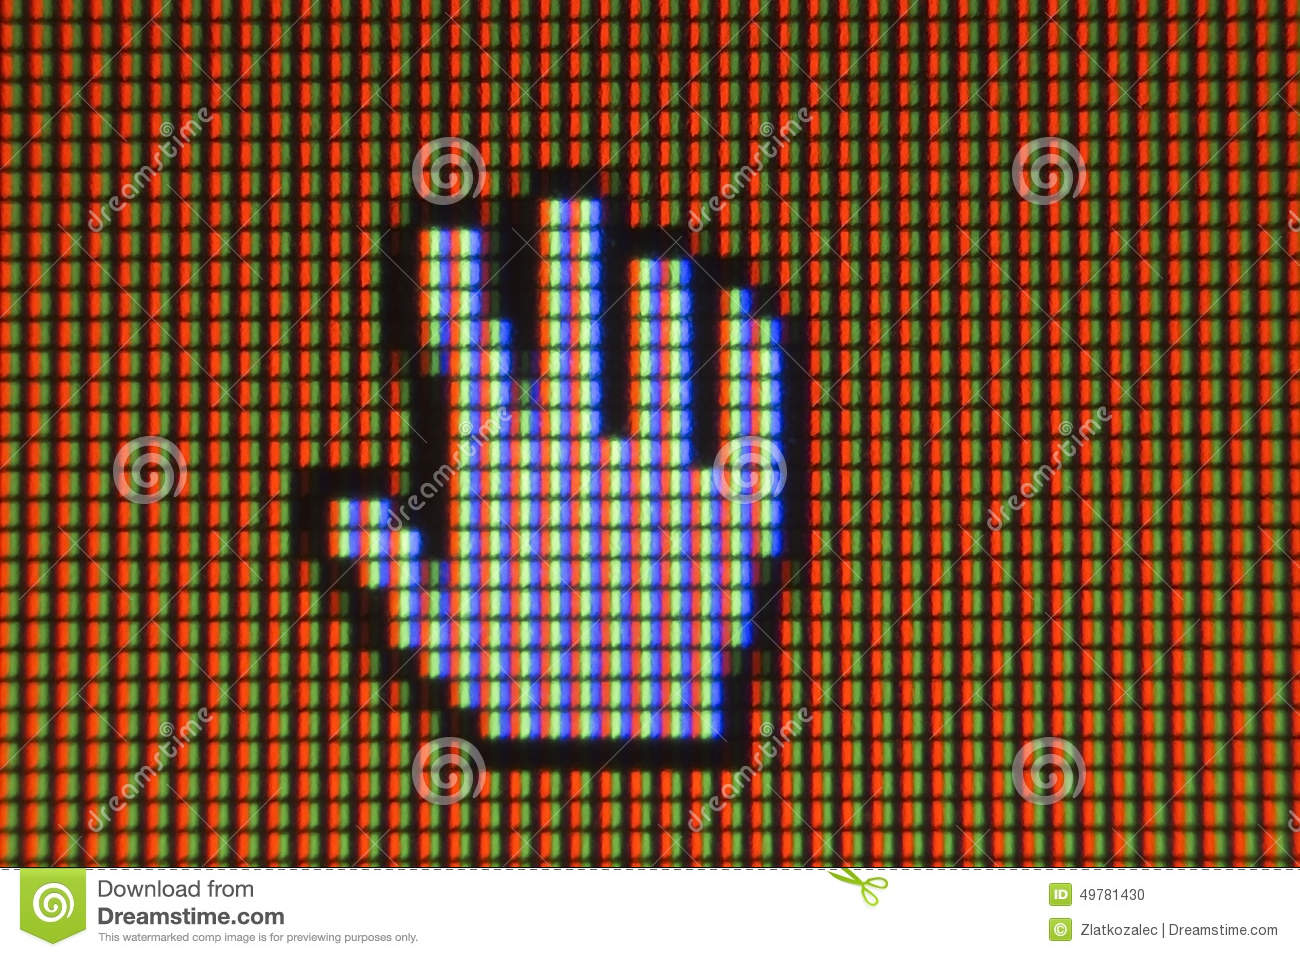 content/images/colour-theory/macro-screen-lcd.jpg